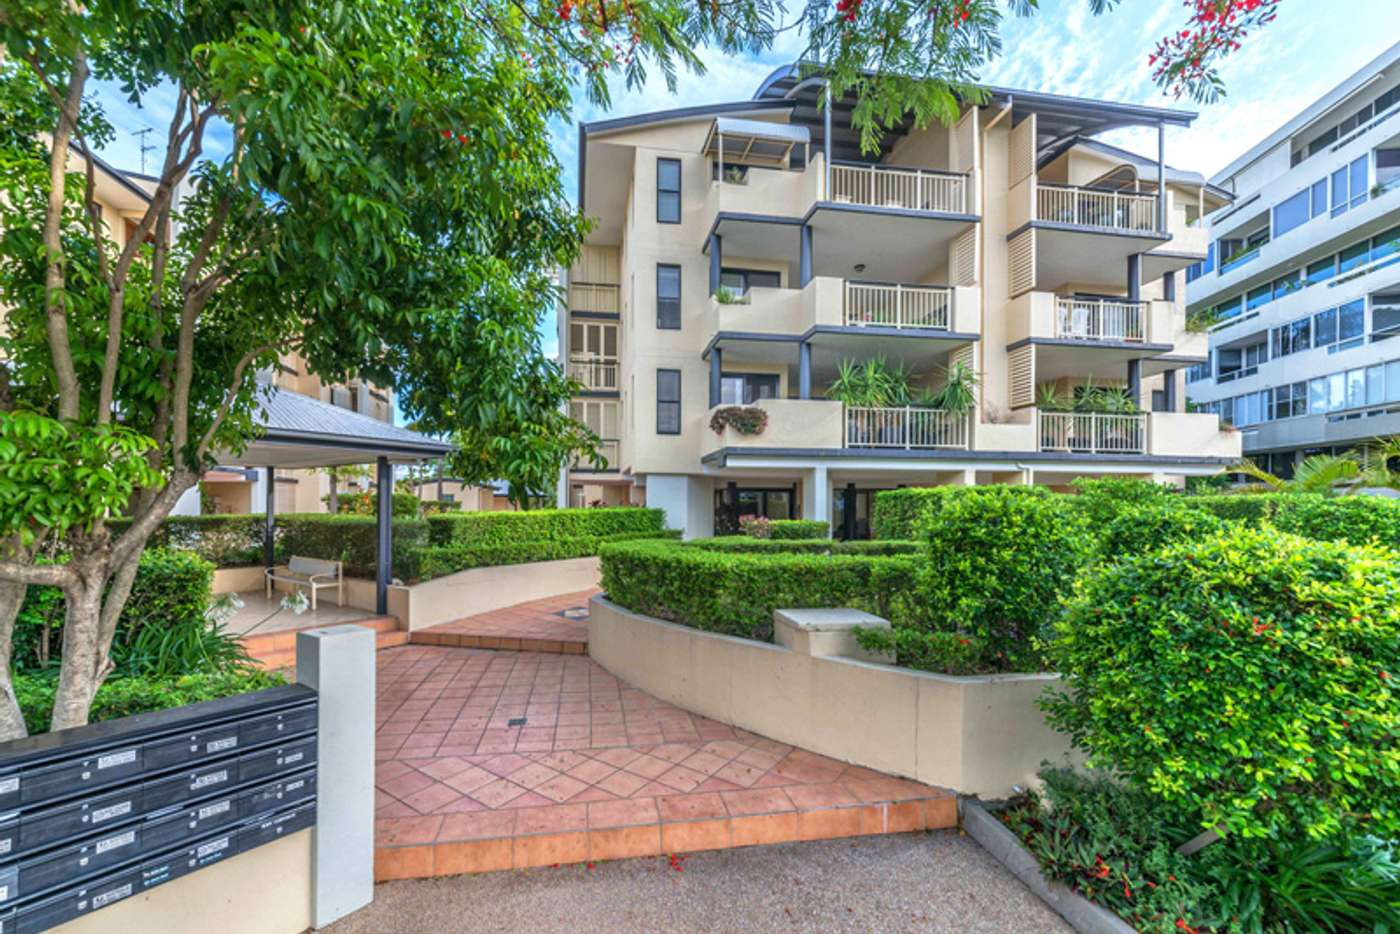 Main view of Homely apartment listing, 23/118 Oxlade Drive, New Farm QLD 4005